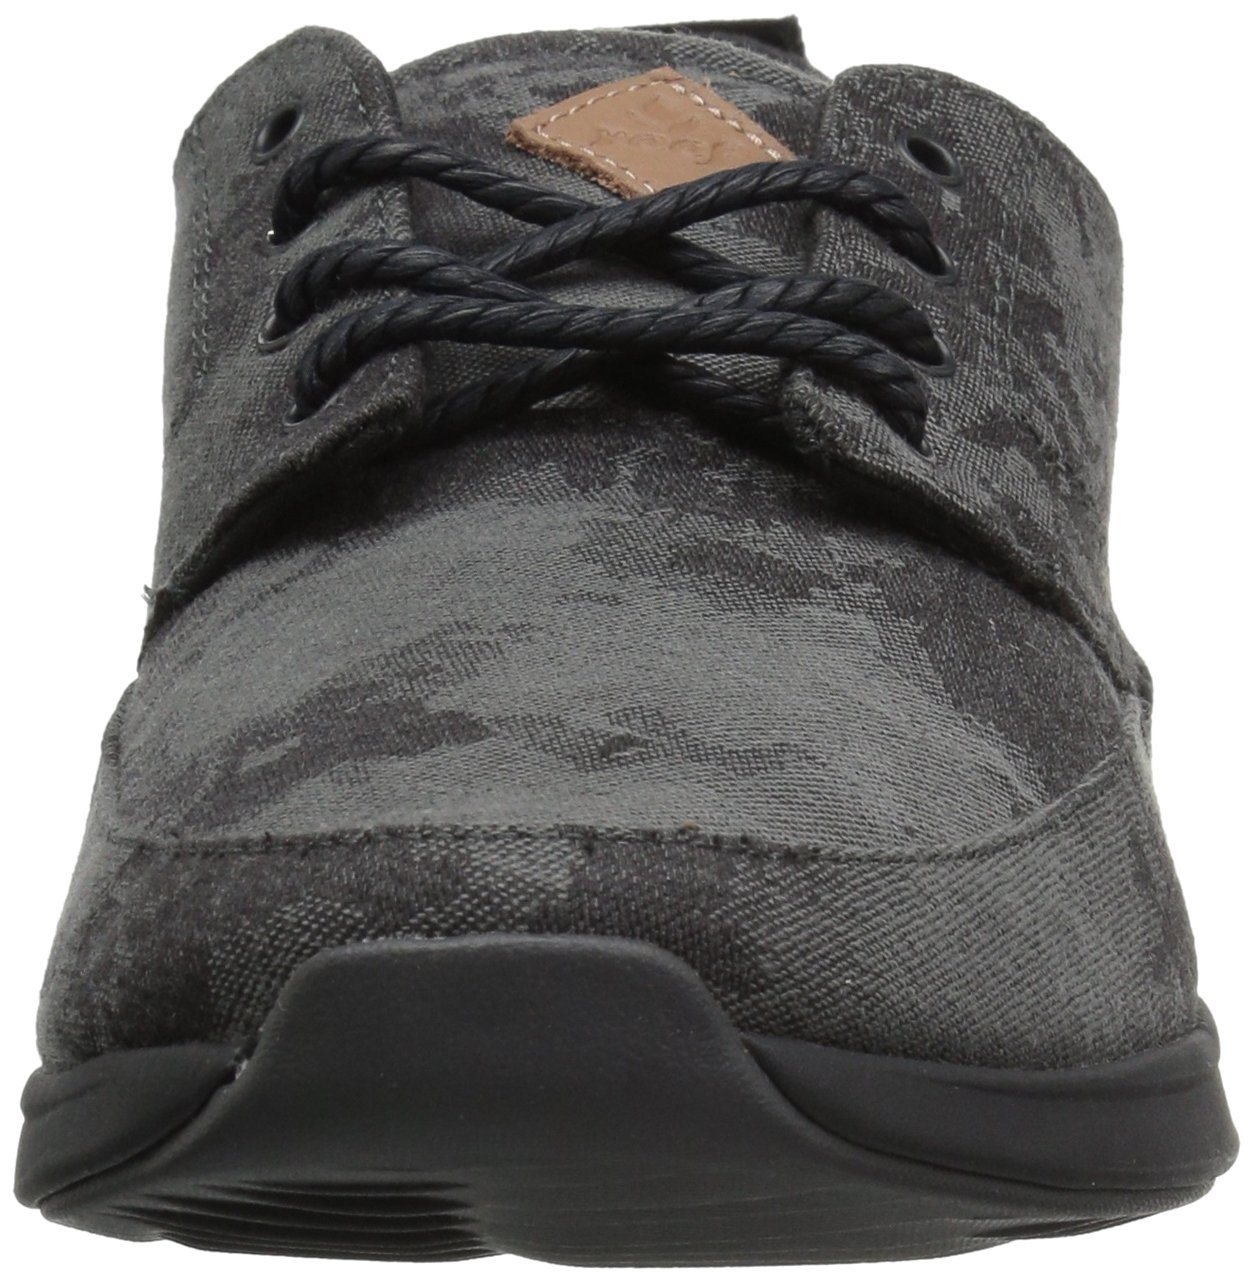 Reef Women's Rover Low TX Fashion Sneaker B06XYF6C24 11 B(M) US|Black Camo